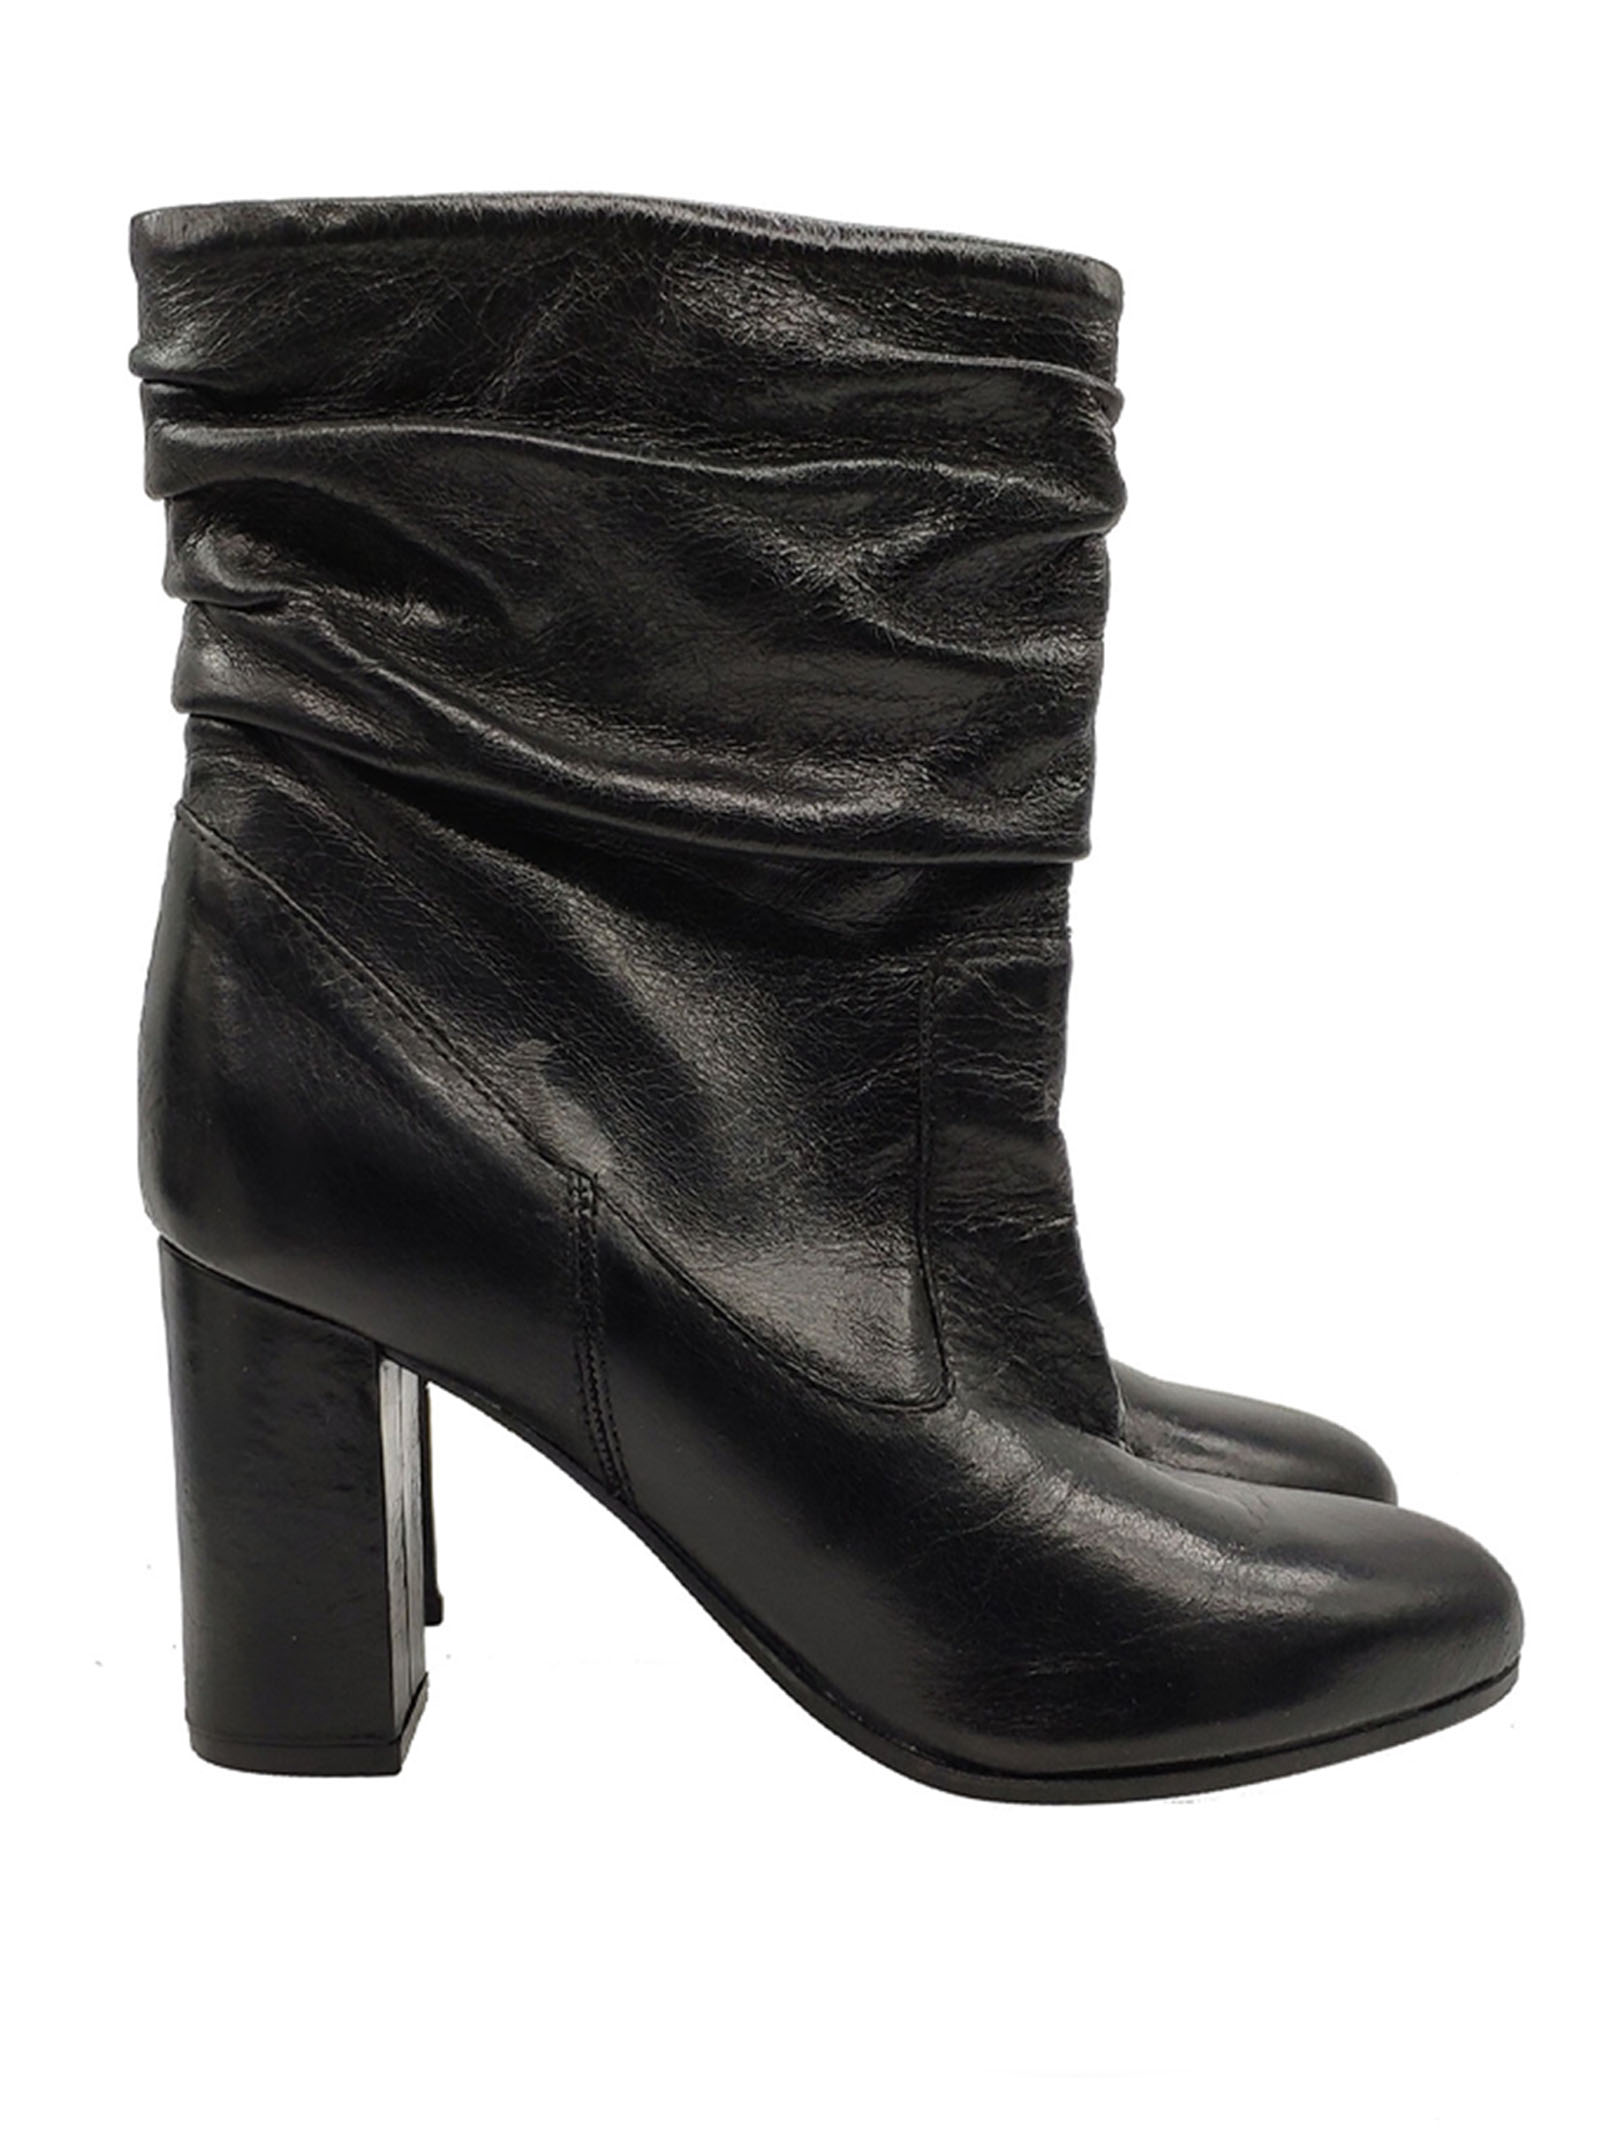 Women's Curled Ankle Boots Carmens   Ankle Boots   40129NERO